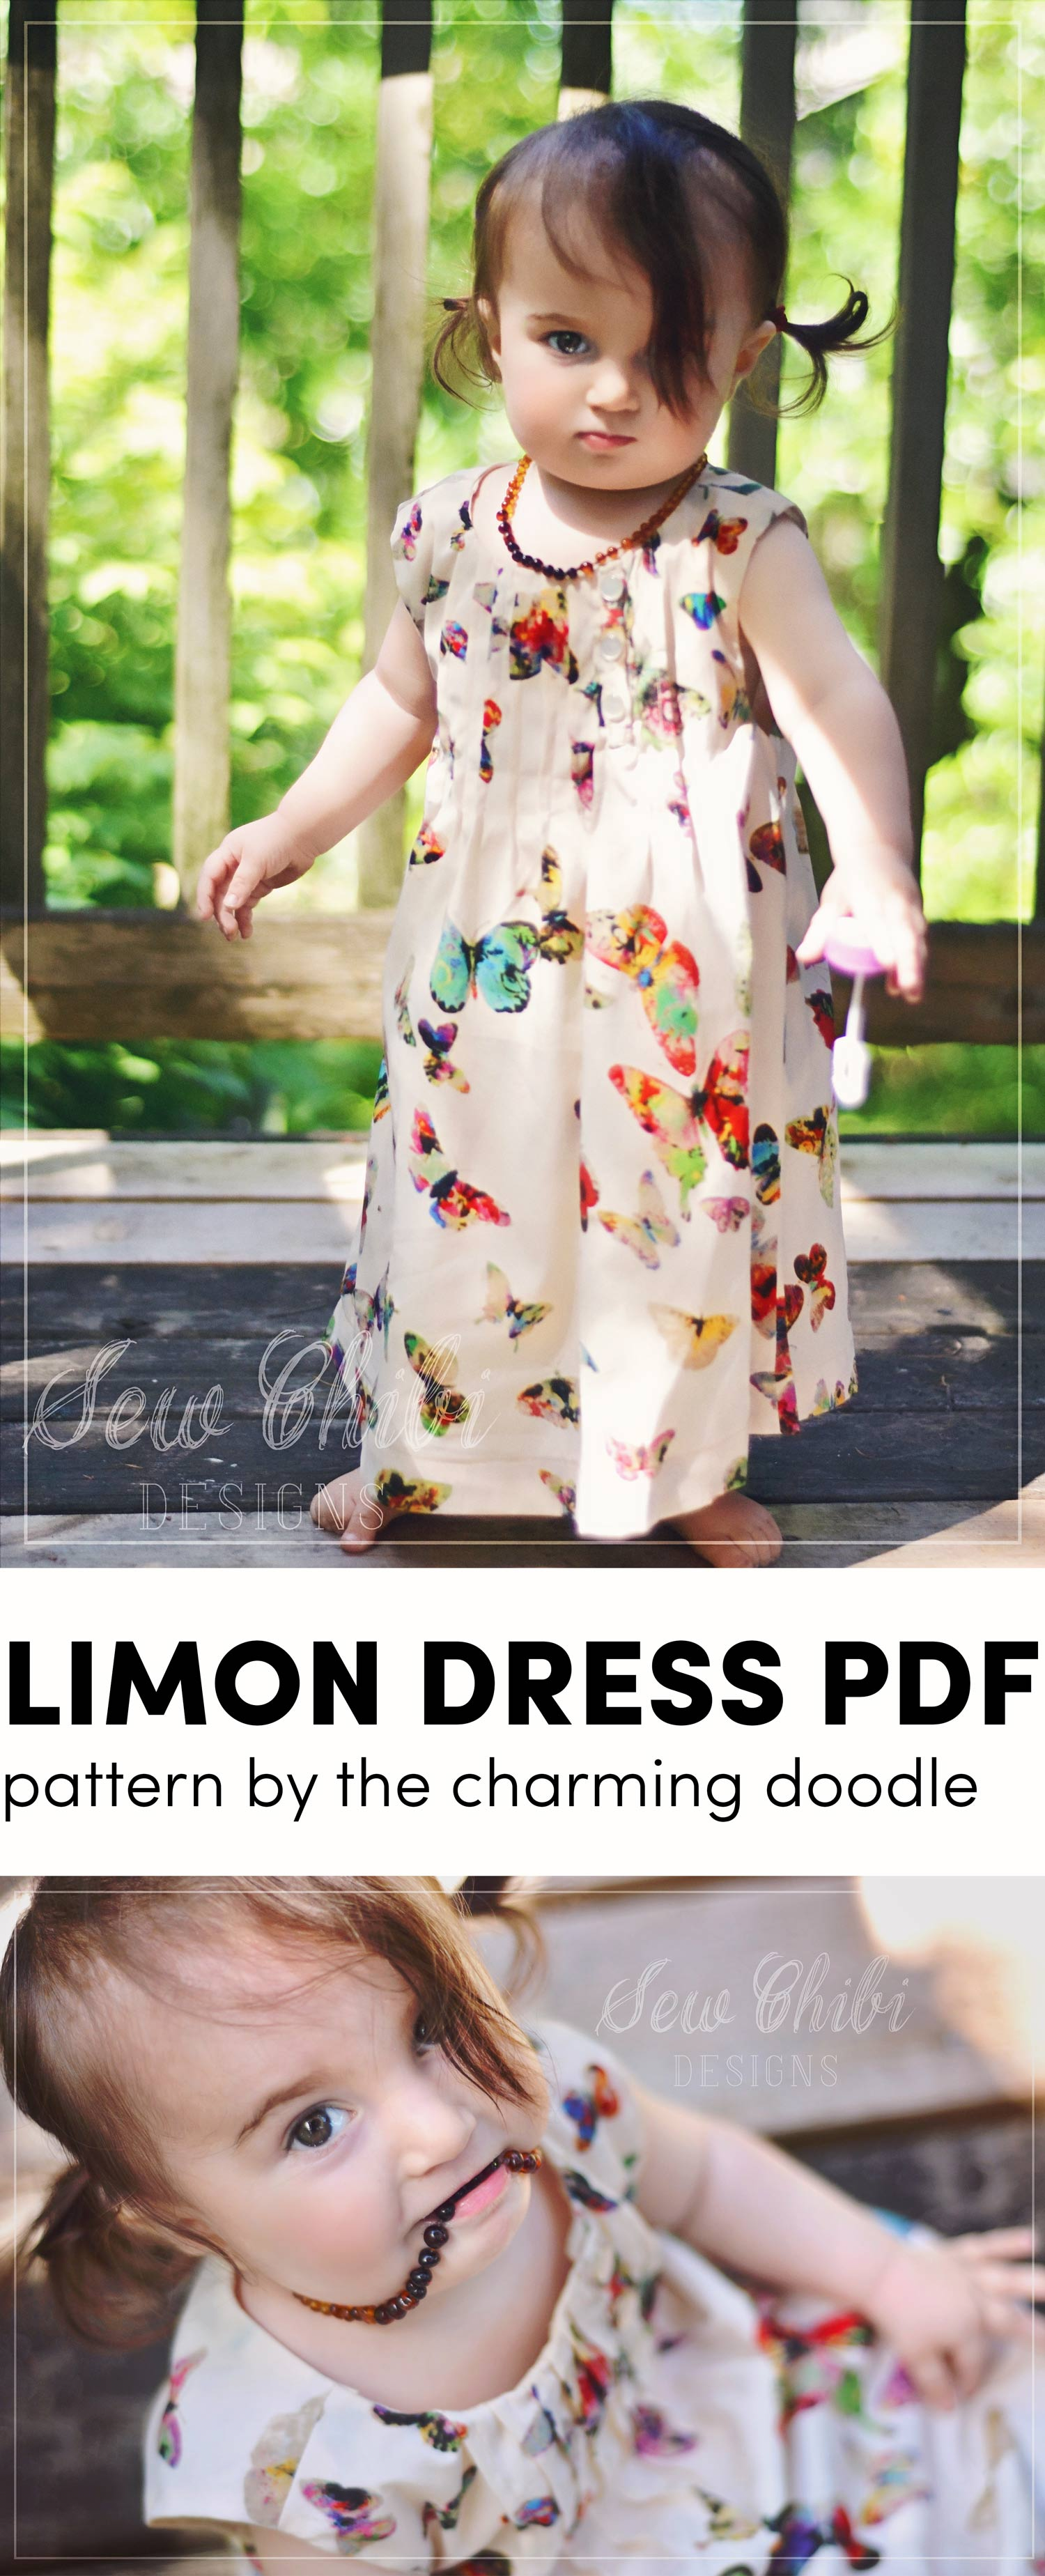 the limon dress PDF pattern sewn by sew chibi designs for willow + co.